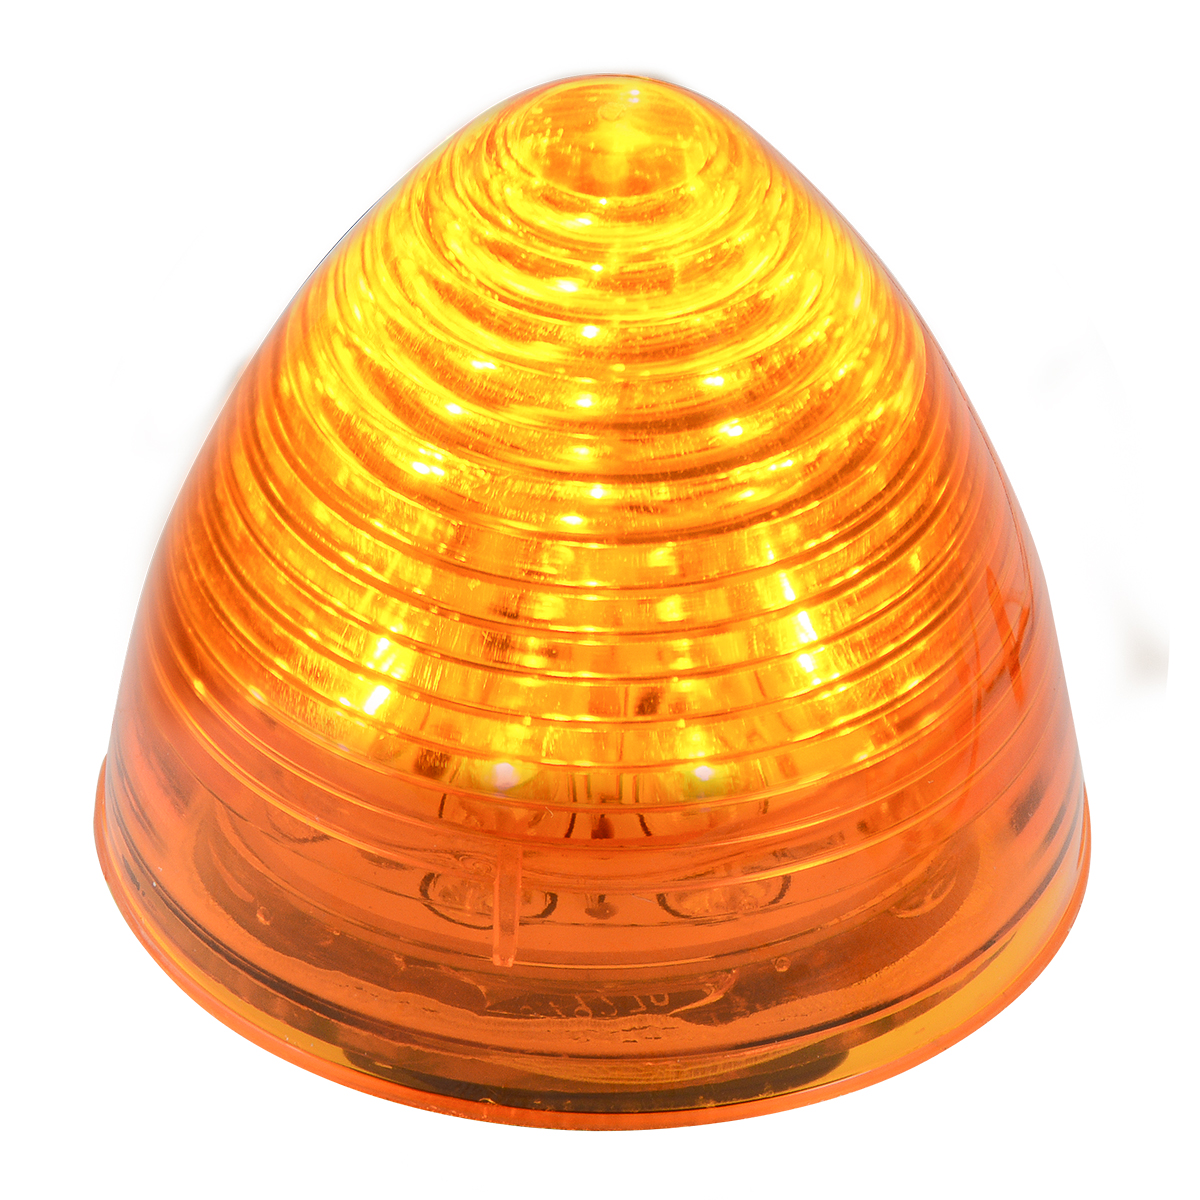 "#79270 2"" LED Beehive Amber/Amber Light"